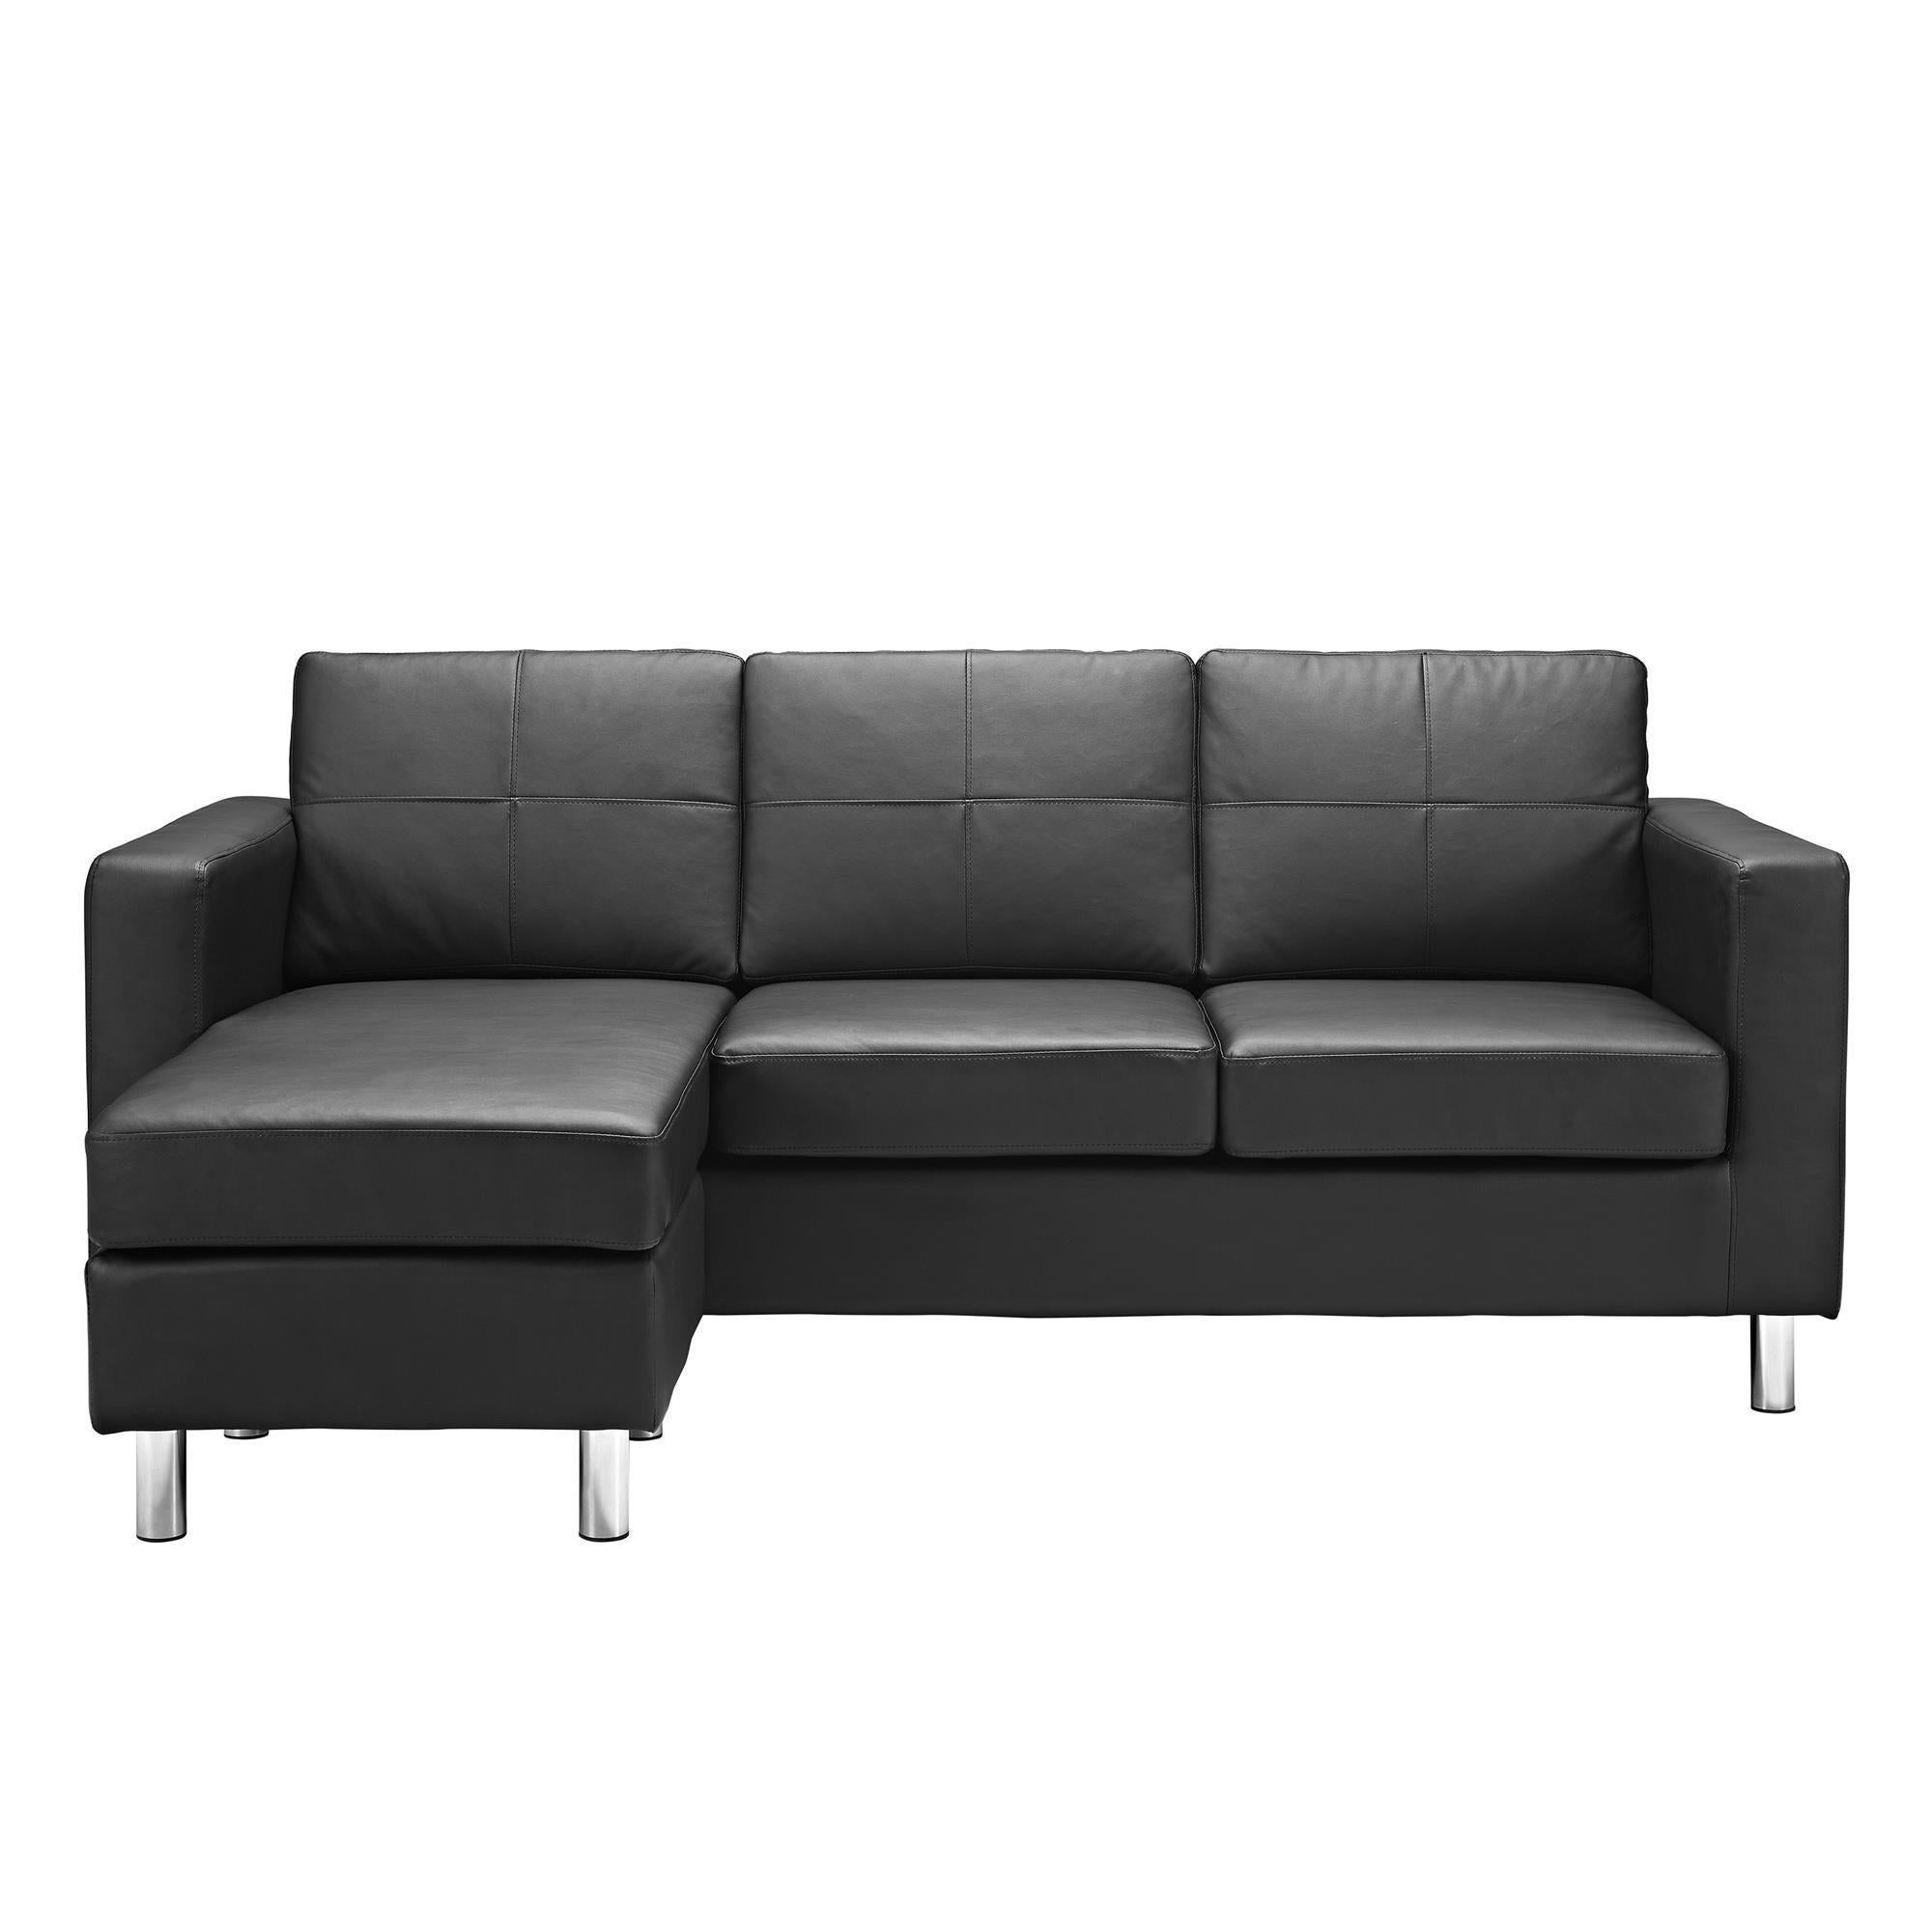 Exceptionnel Shop Dorel Living Small Spaces Black Faux Leather Configurable Sectional  Sofa   Free Shipping Today   Overstock.com   10355256